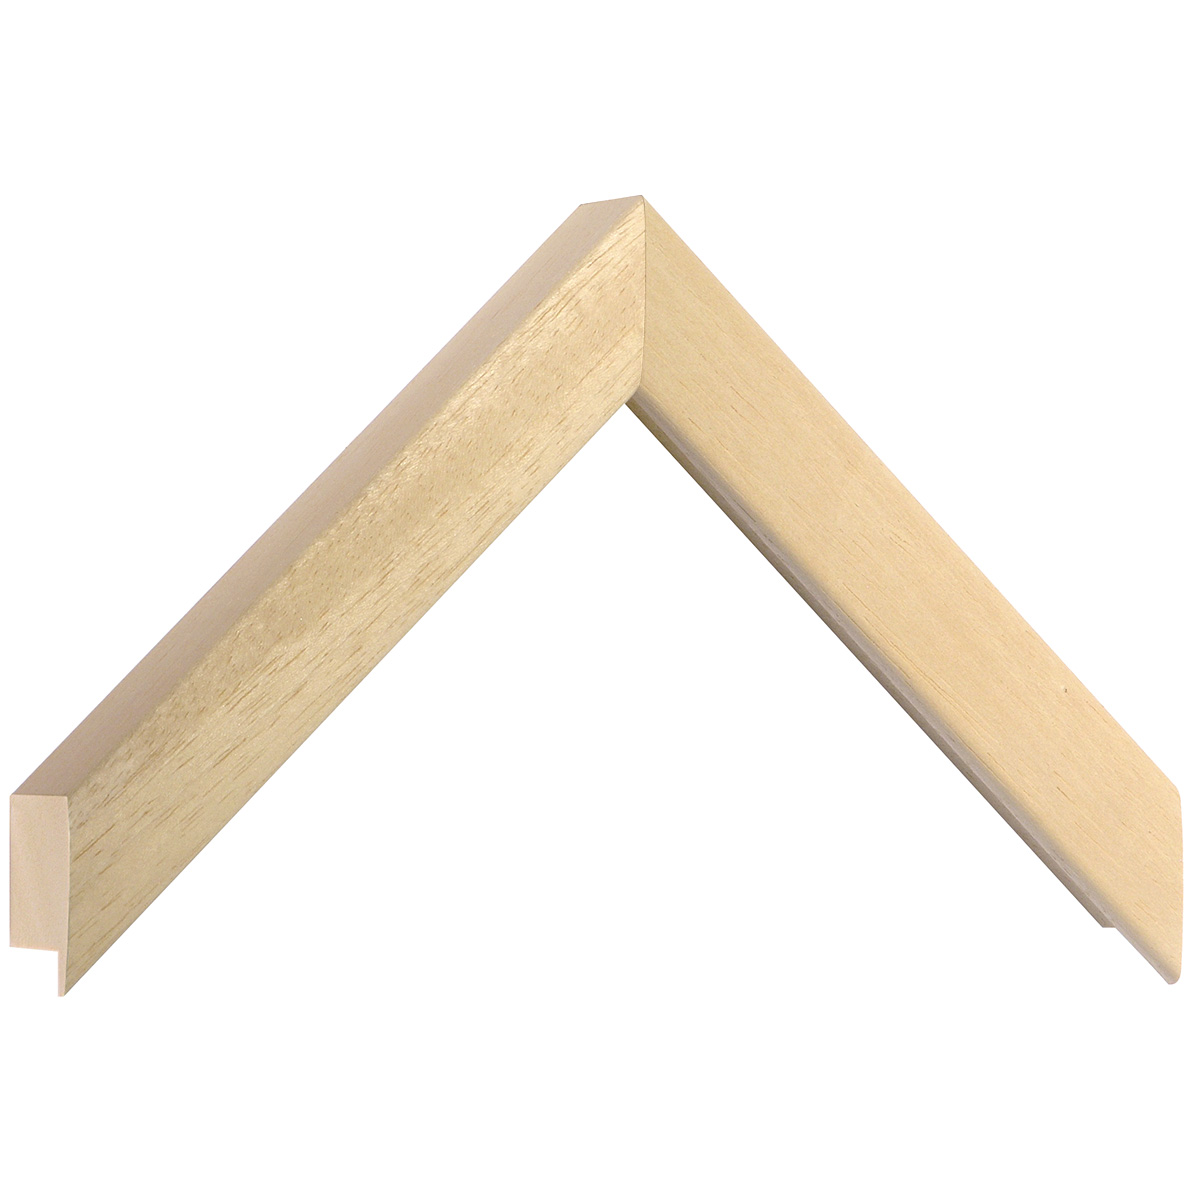 Moulding ayous, width 25mm, height 33mm, bare timber